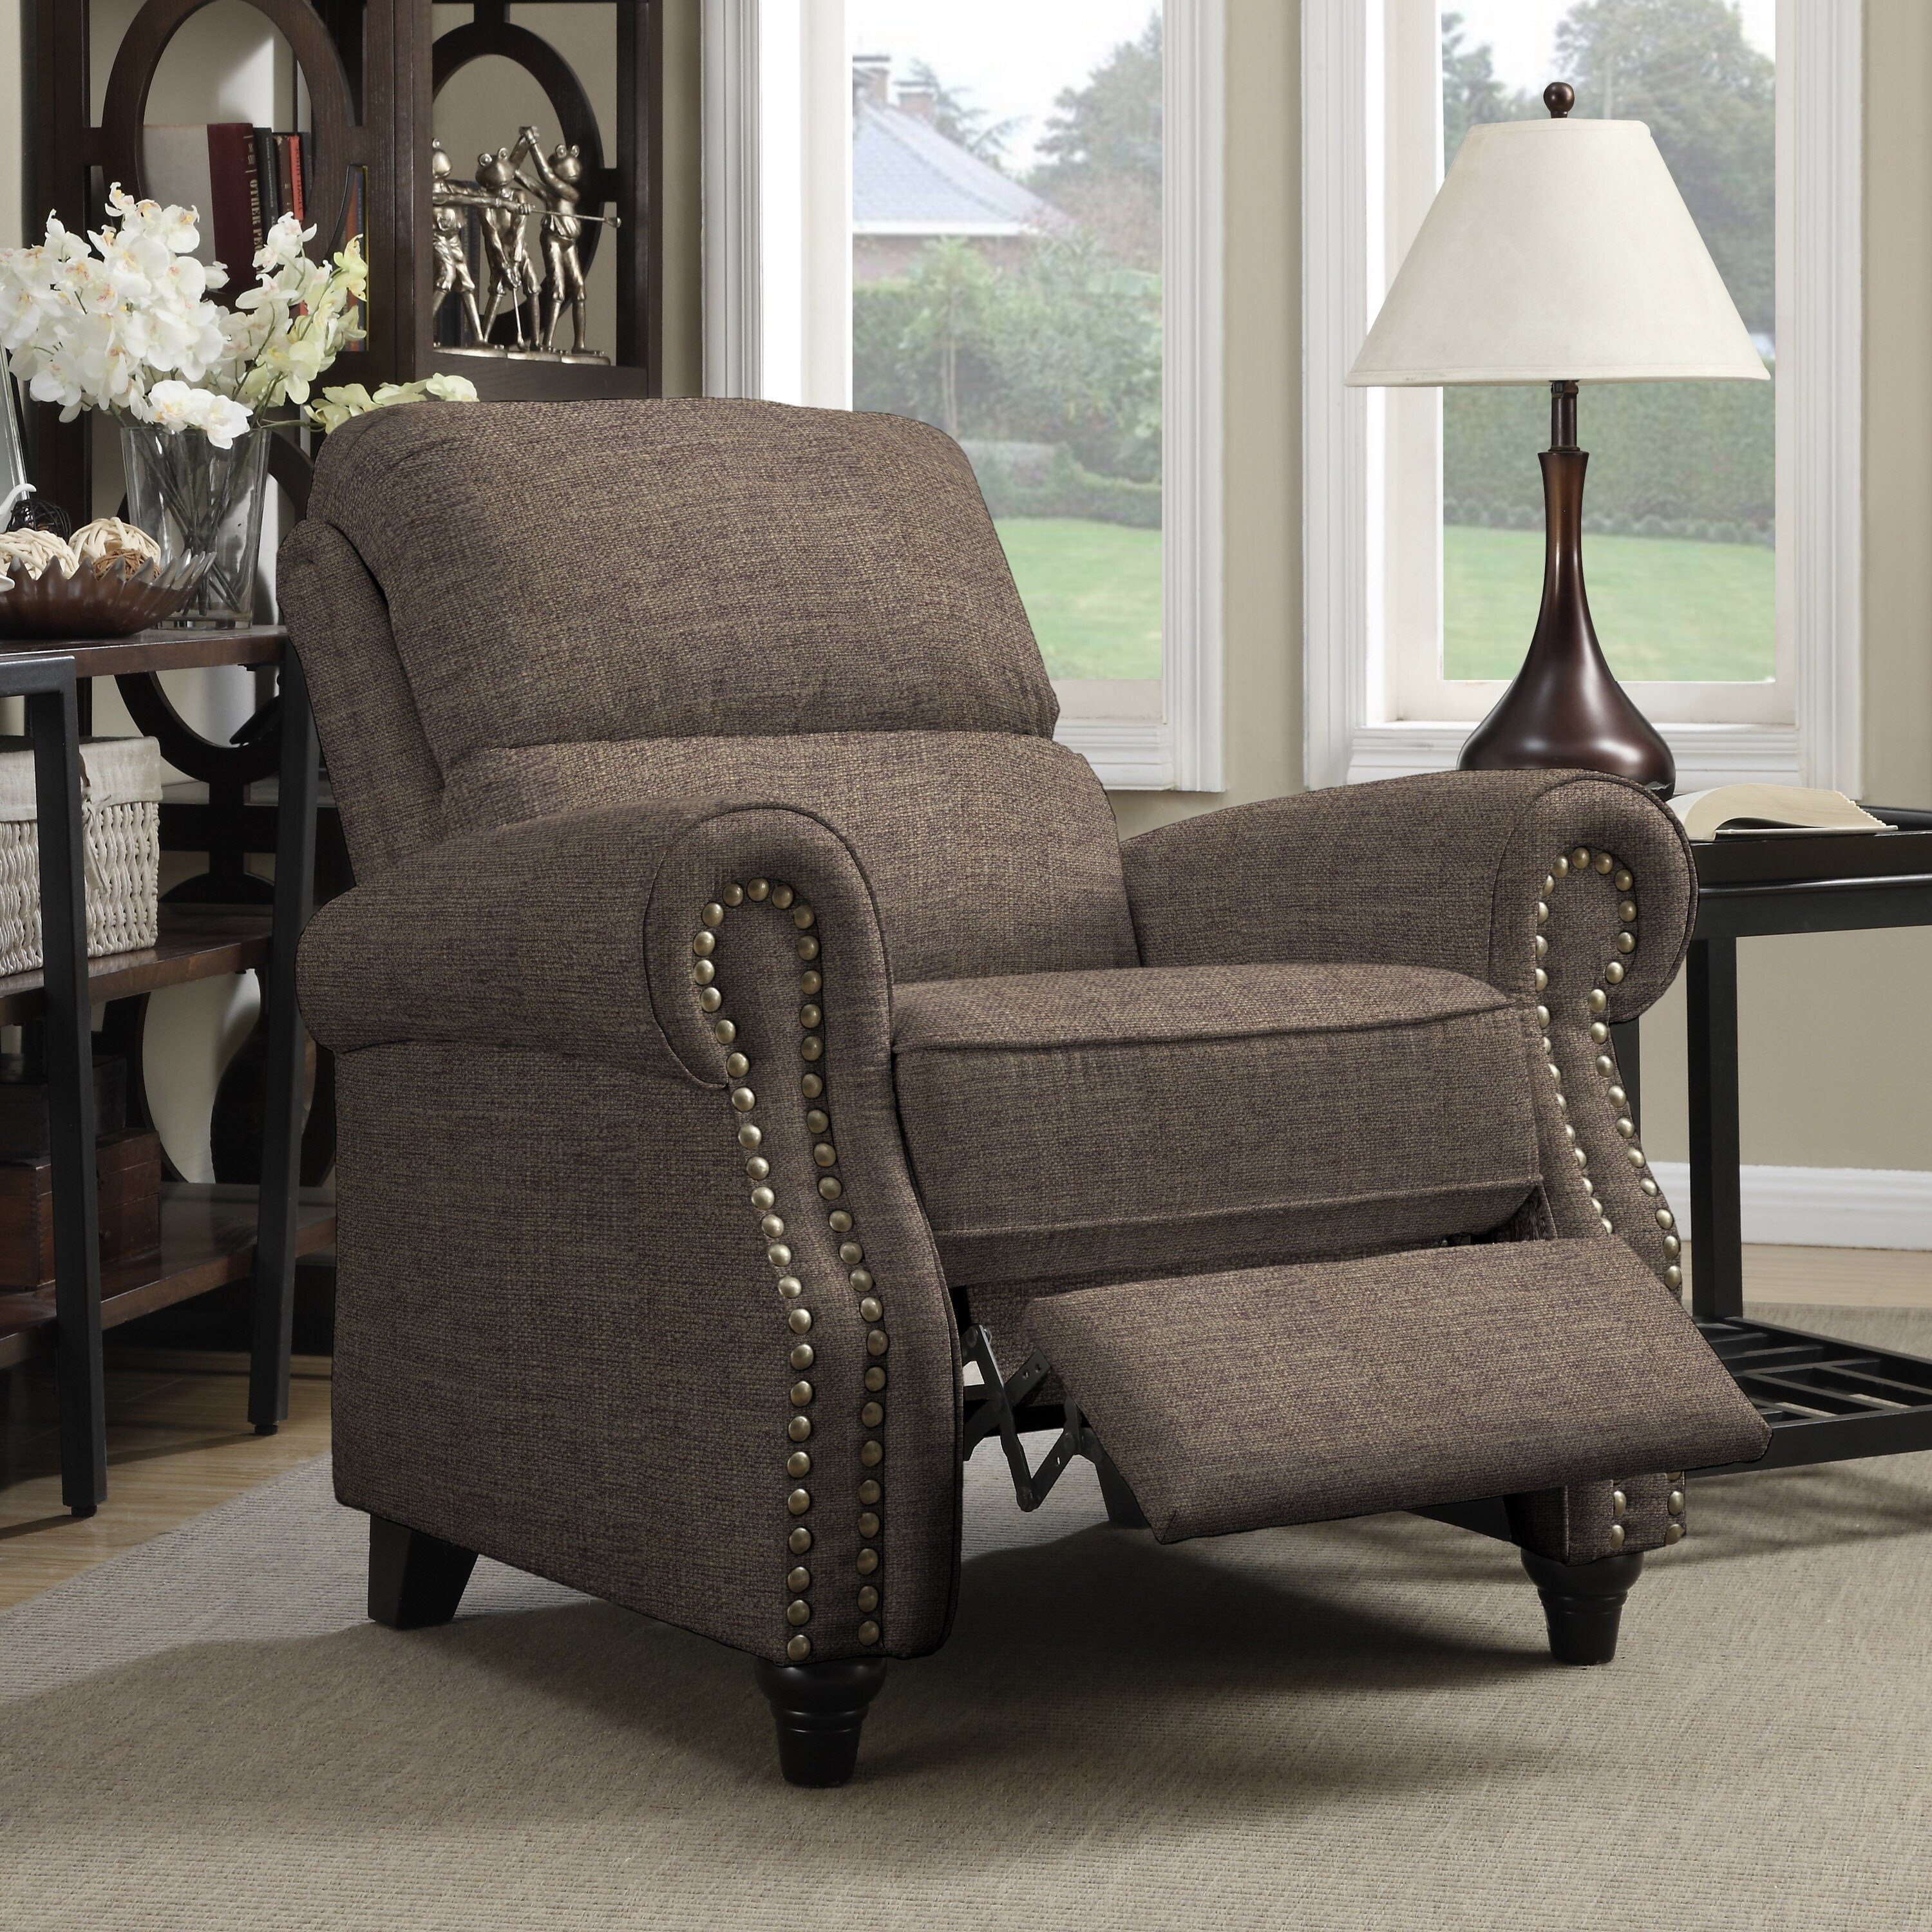 Pushback Recliner Chair Wall Hugger Reclining Arm Brown